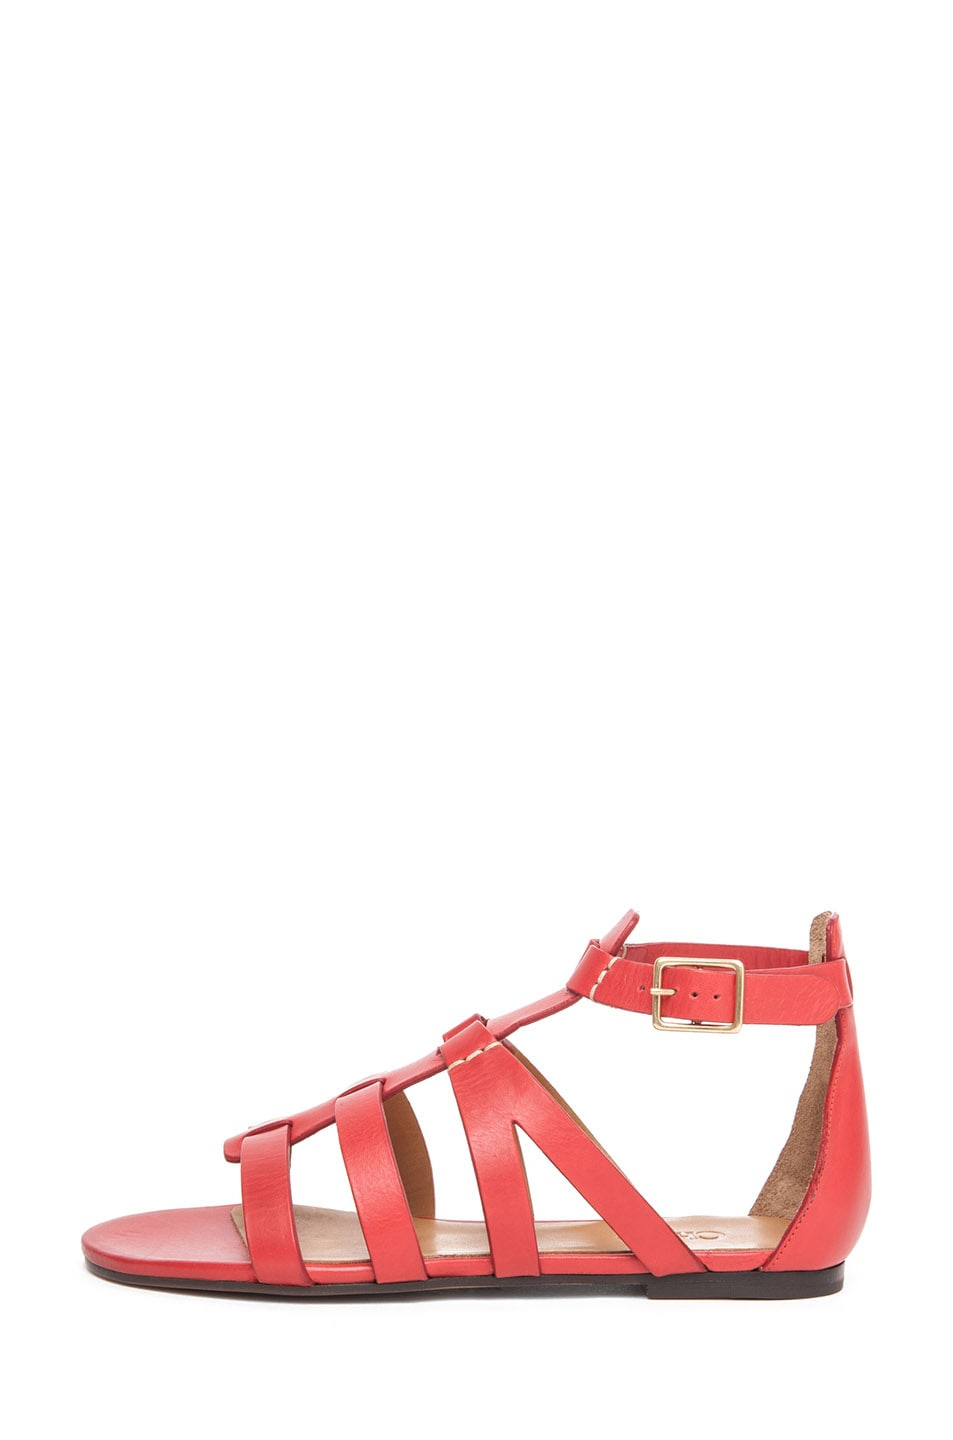 Image 1 of Chloe Leather Gladiator Sandals in Red